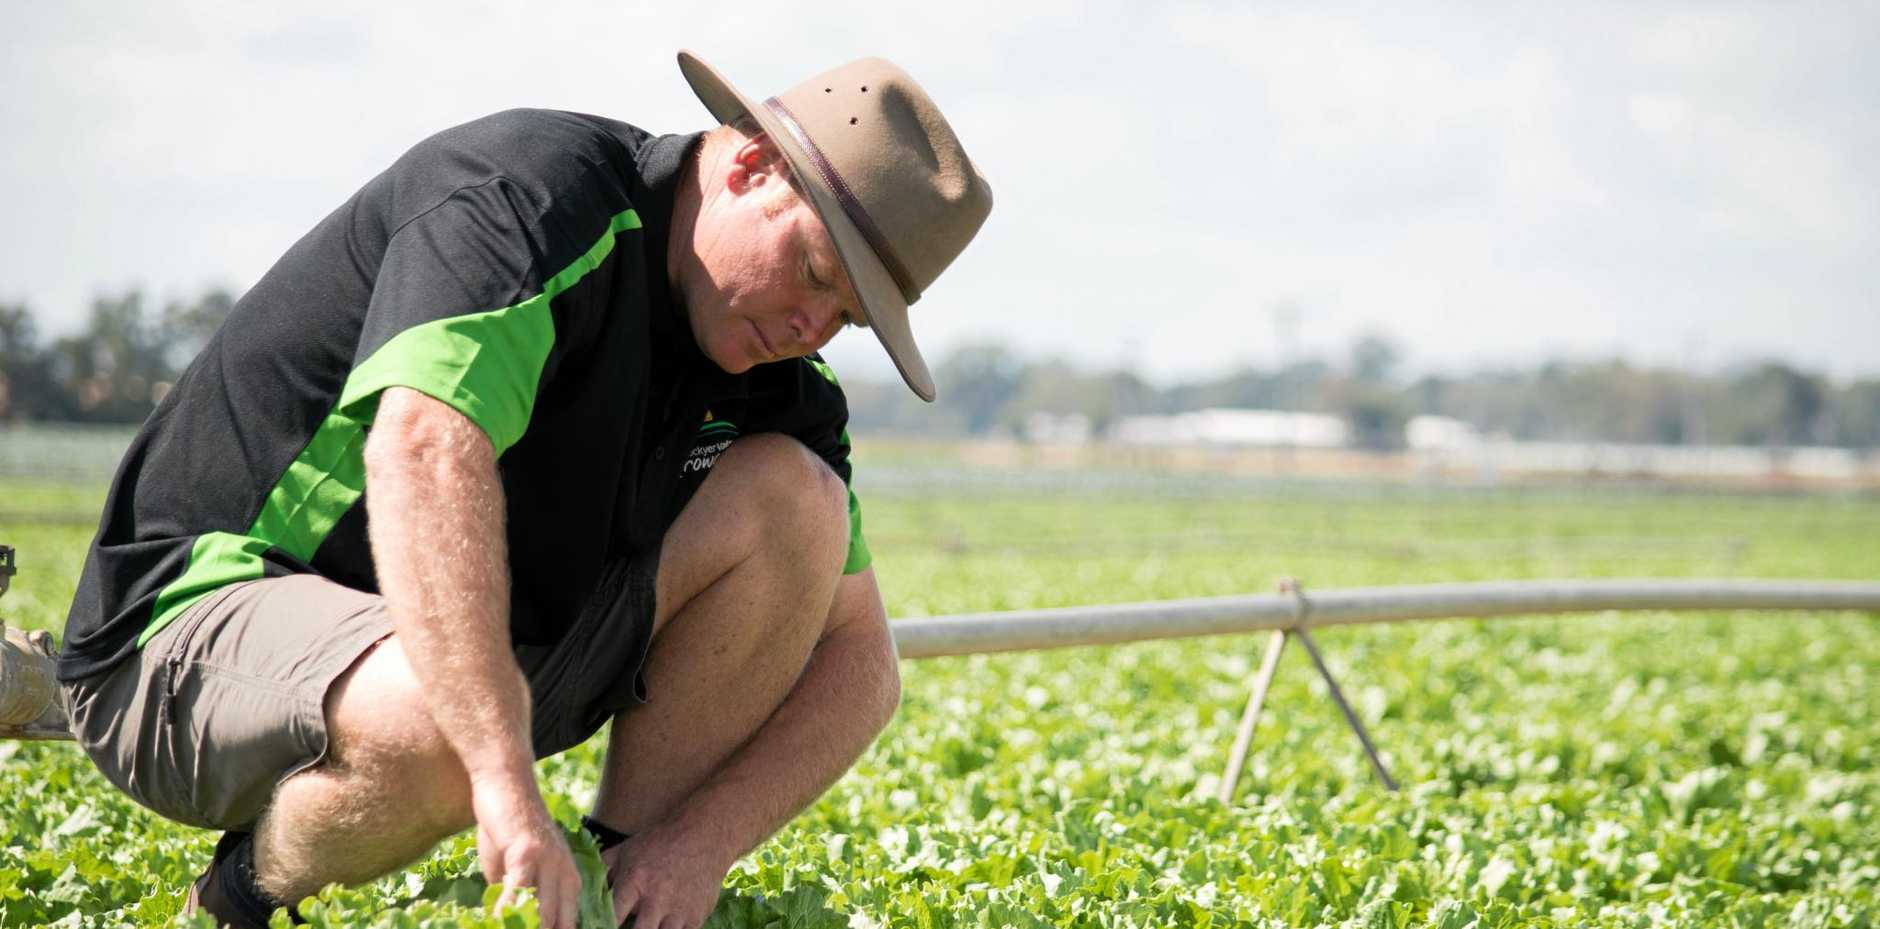 WINTER VEG: Lockyer Valley Growers Association president Michael Sippel says farmers are feeling the early heat.